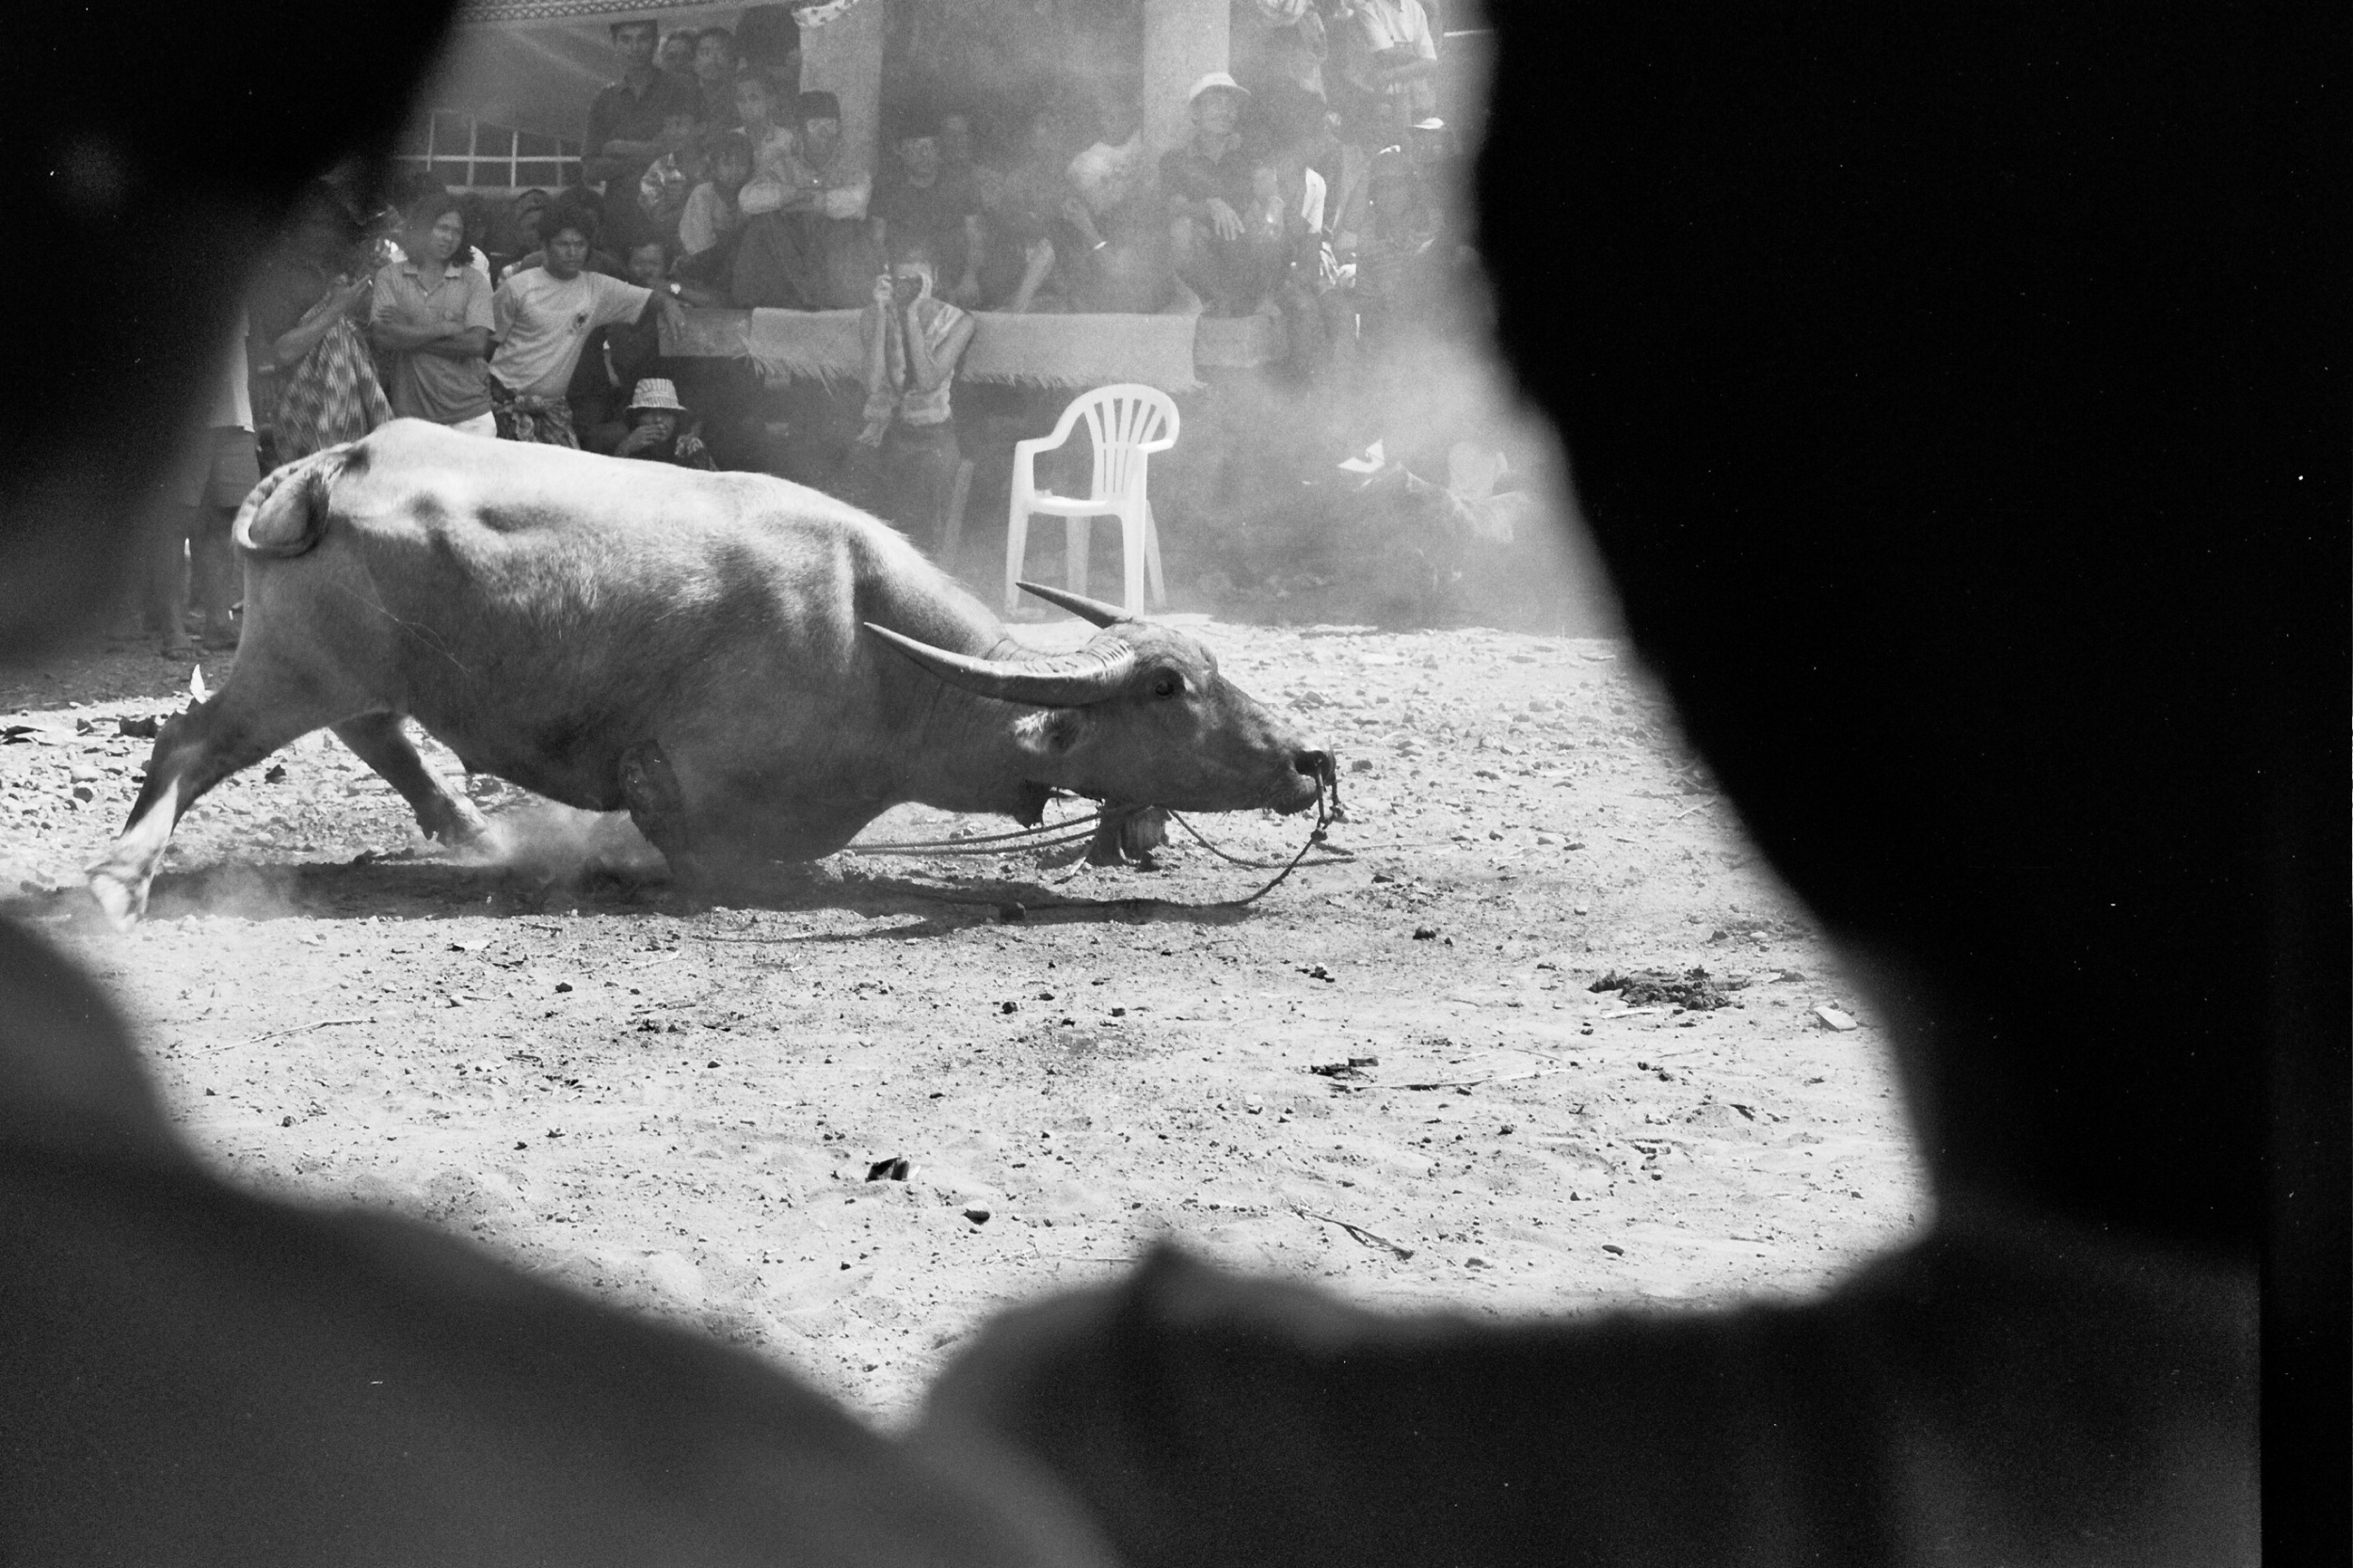 Buffalo sacrifice in the Toreja lands